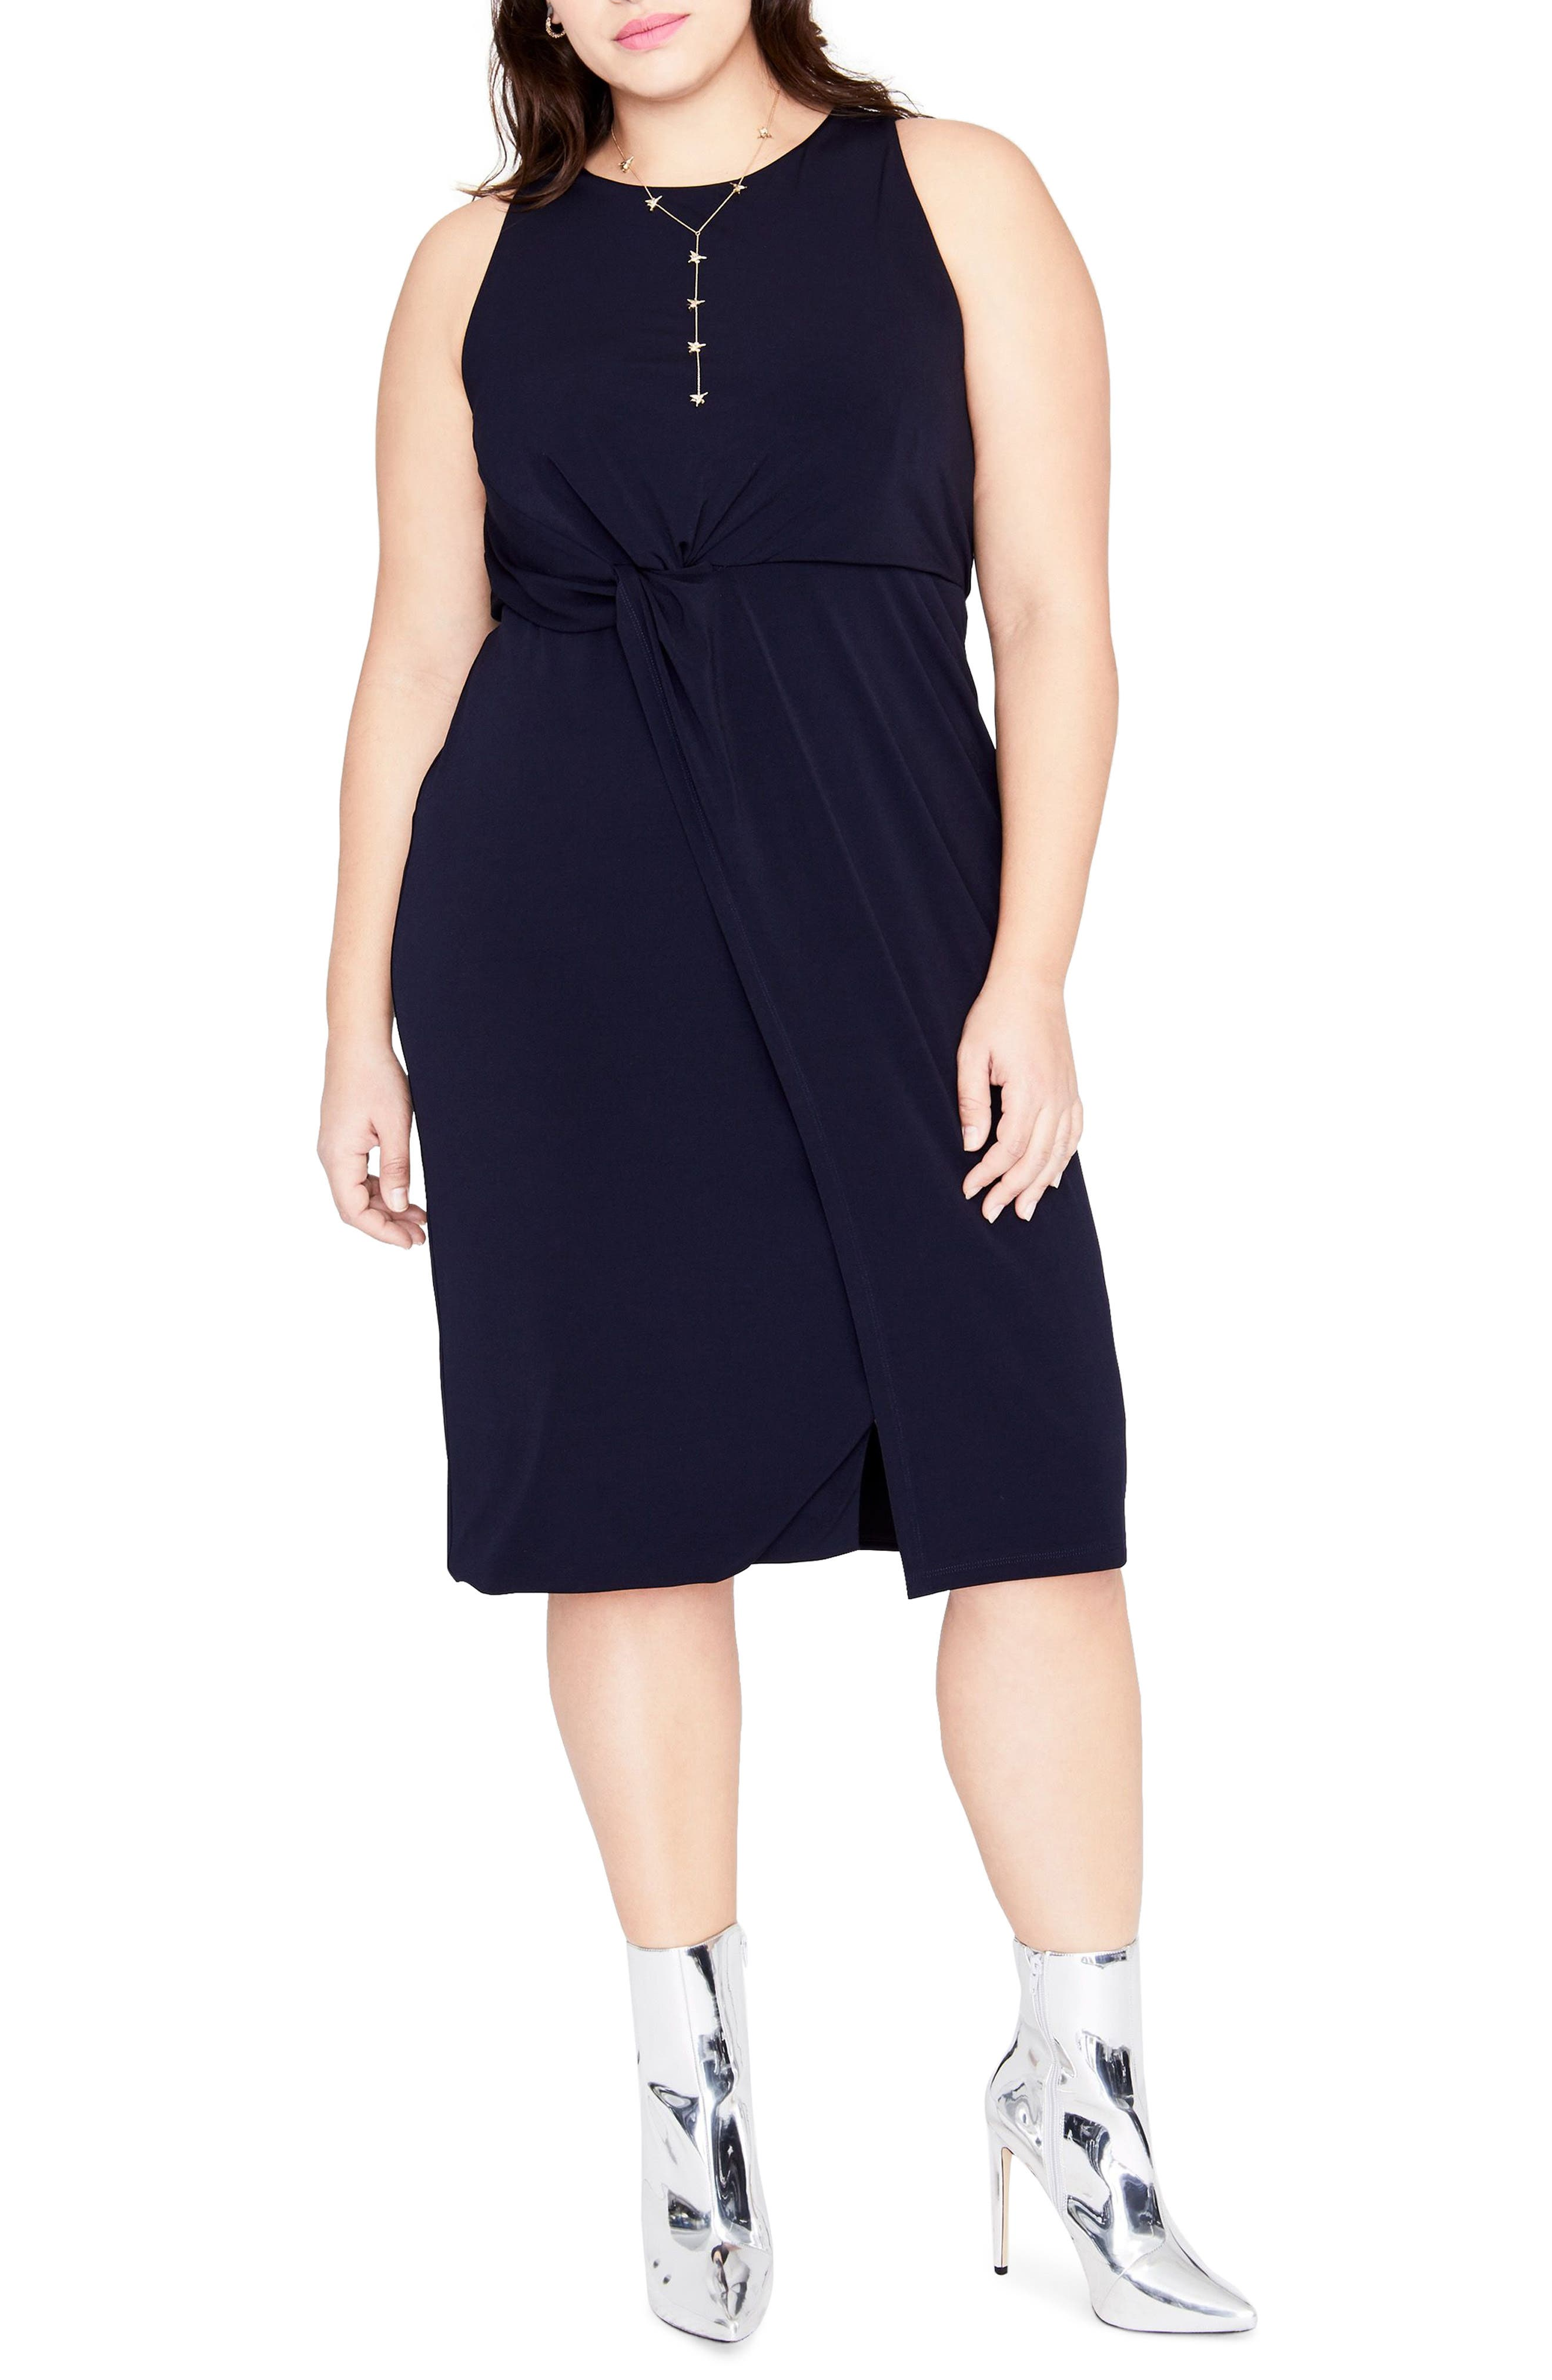 Main Image - RACHEL Rachel Roy Twist Front Dress (Plus Size)